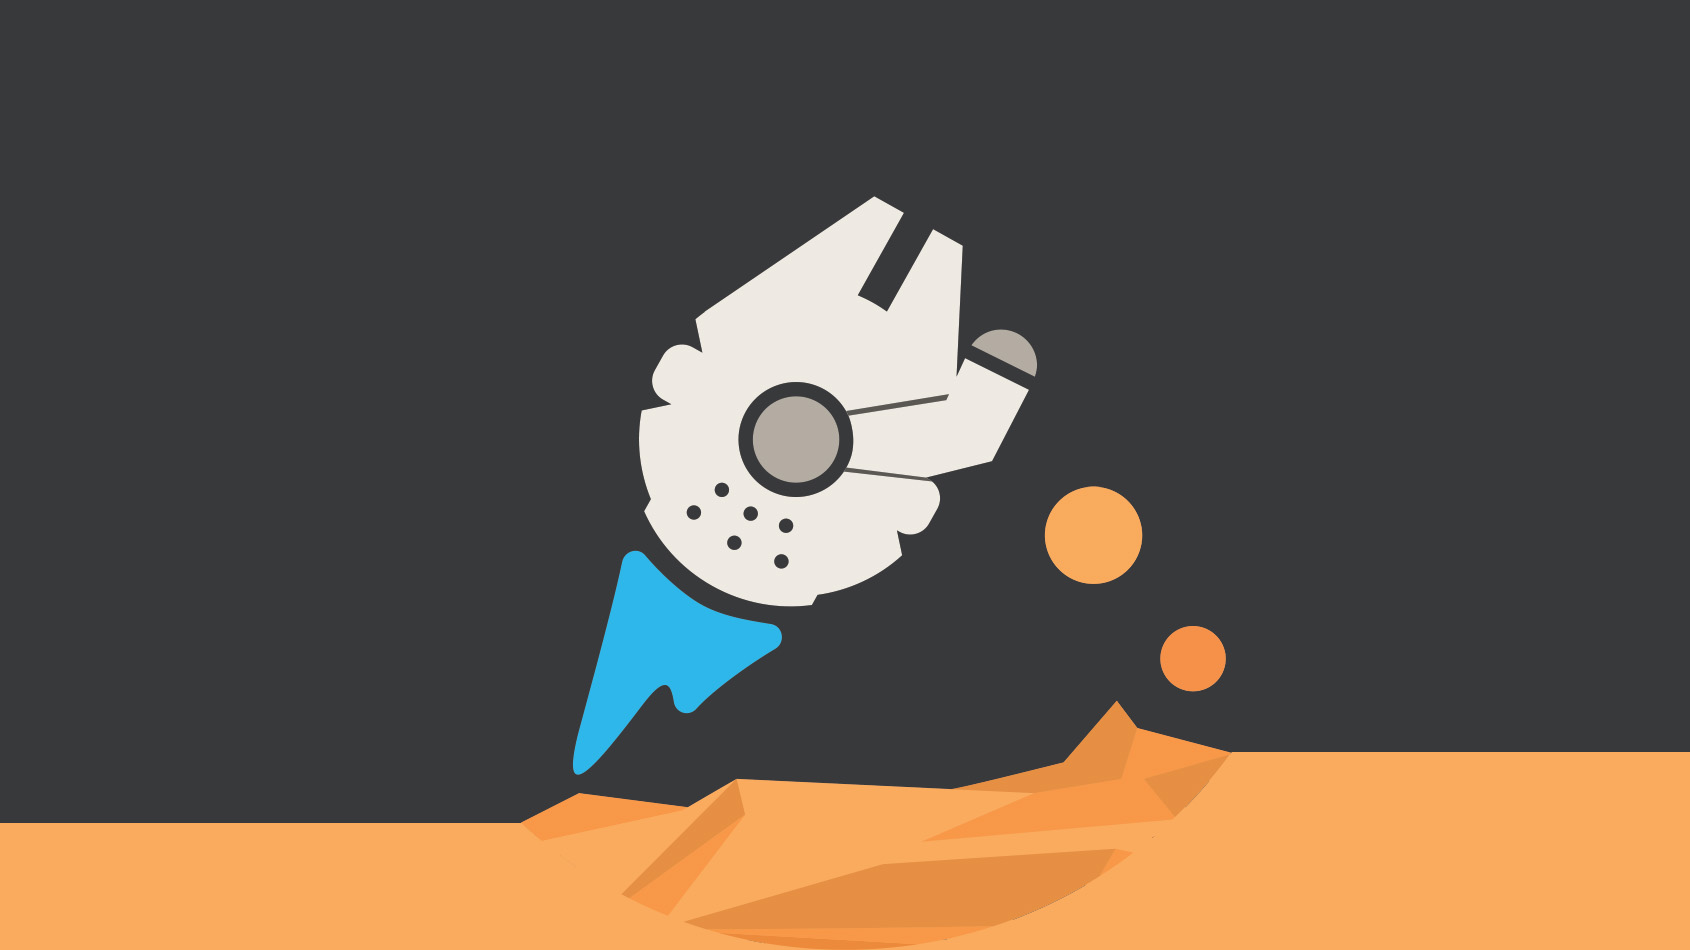 Quand Pixar rencontre Star Wars